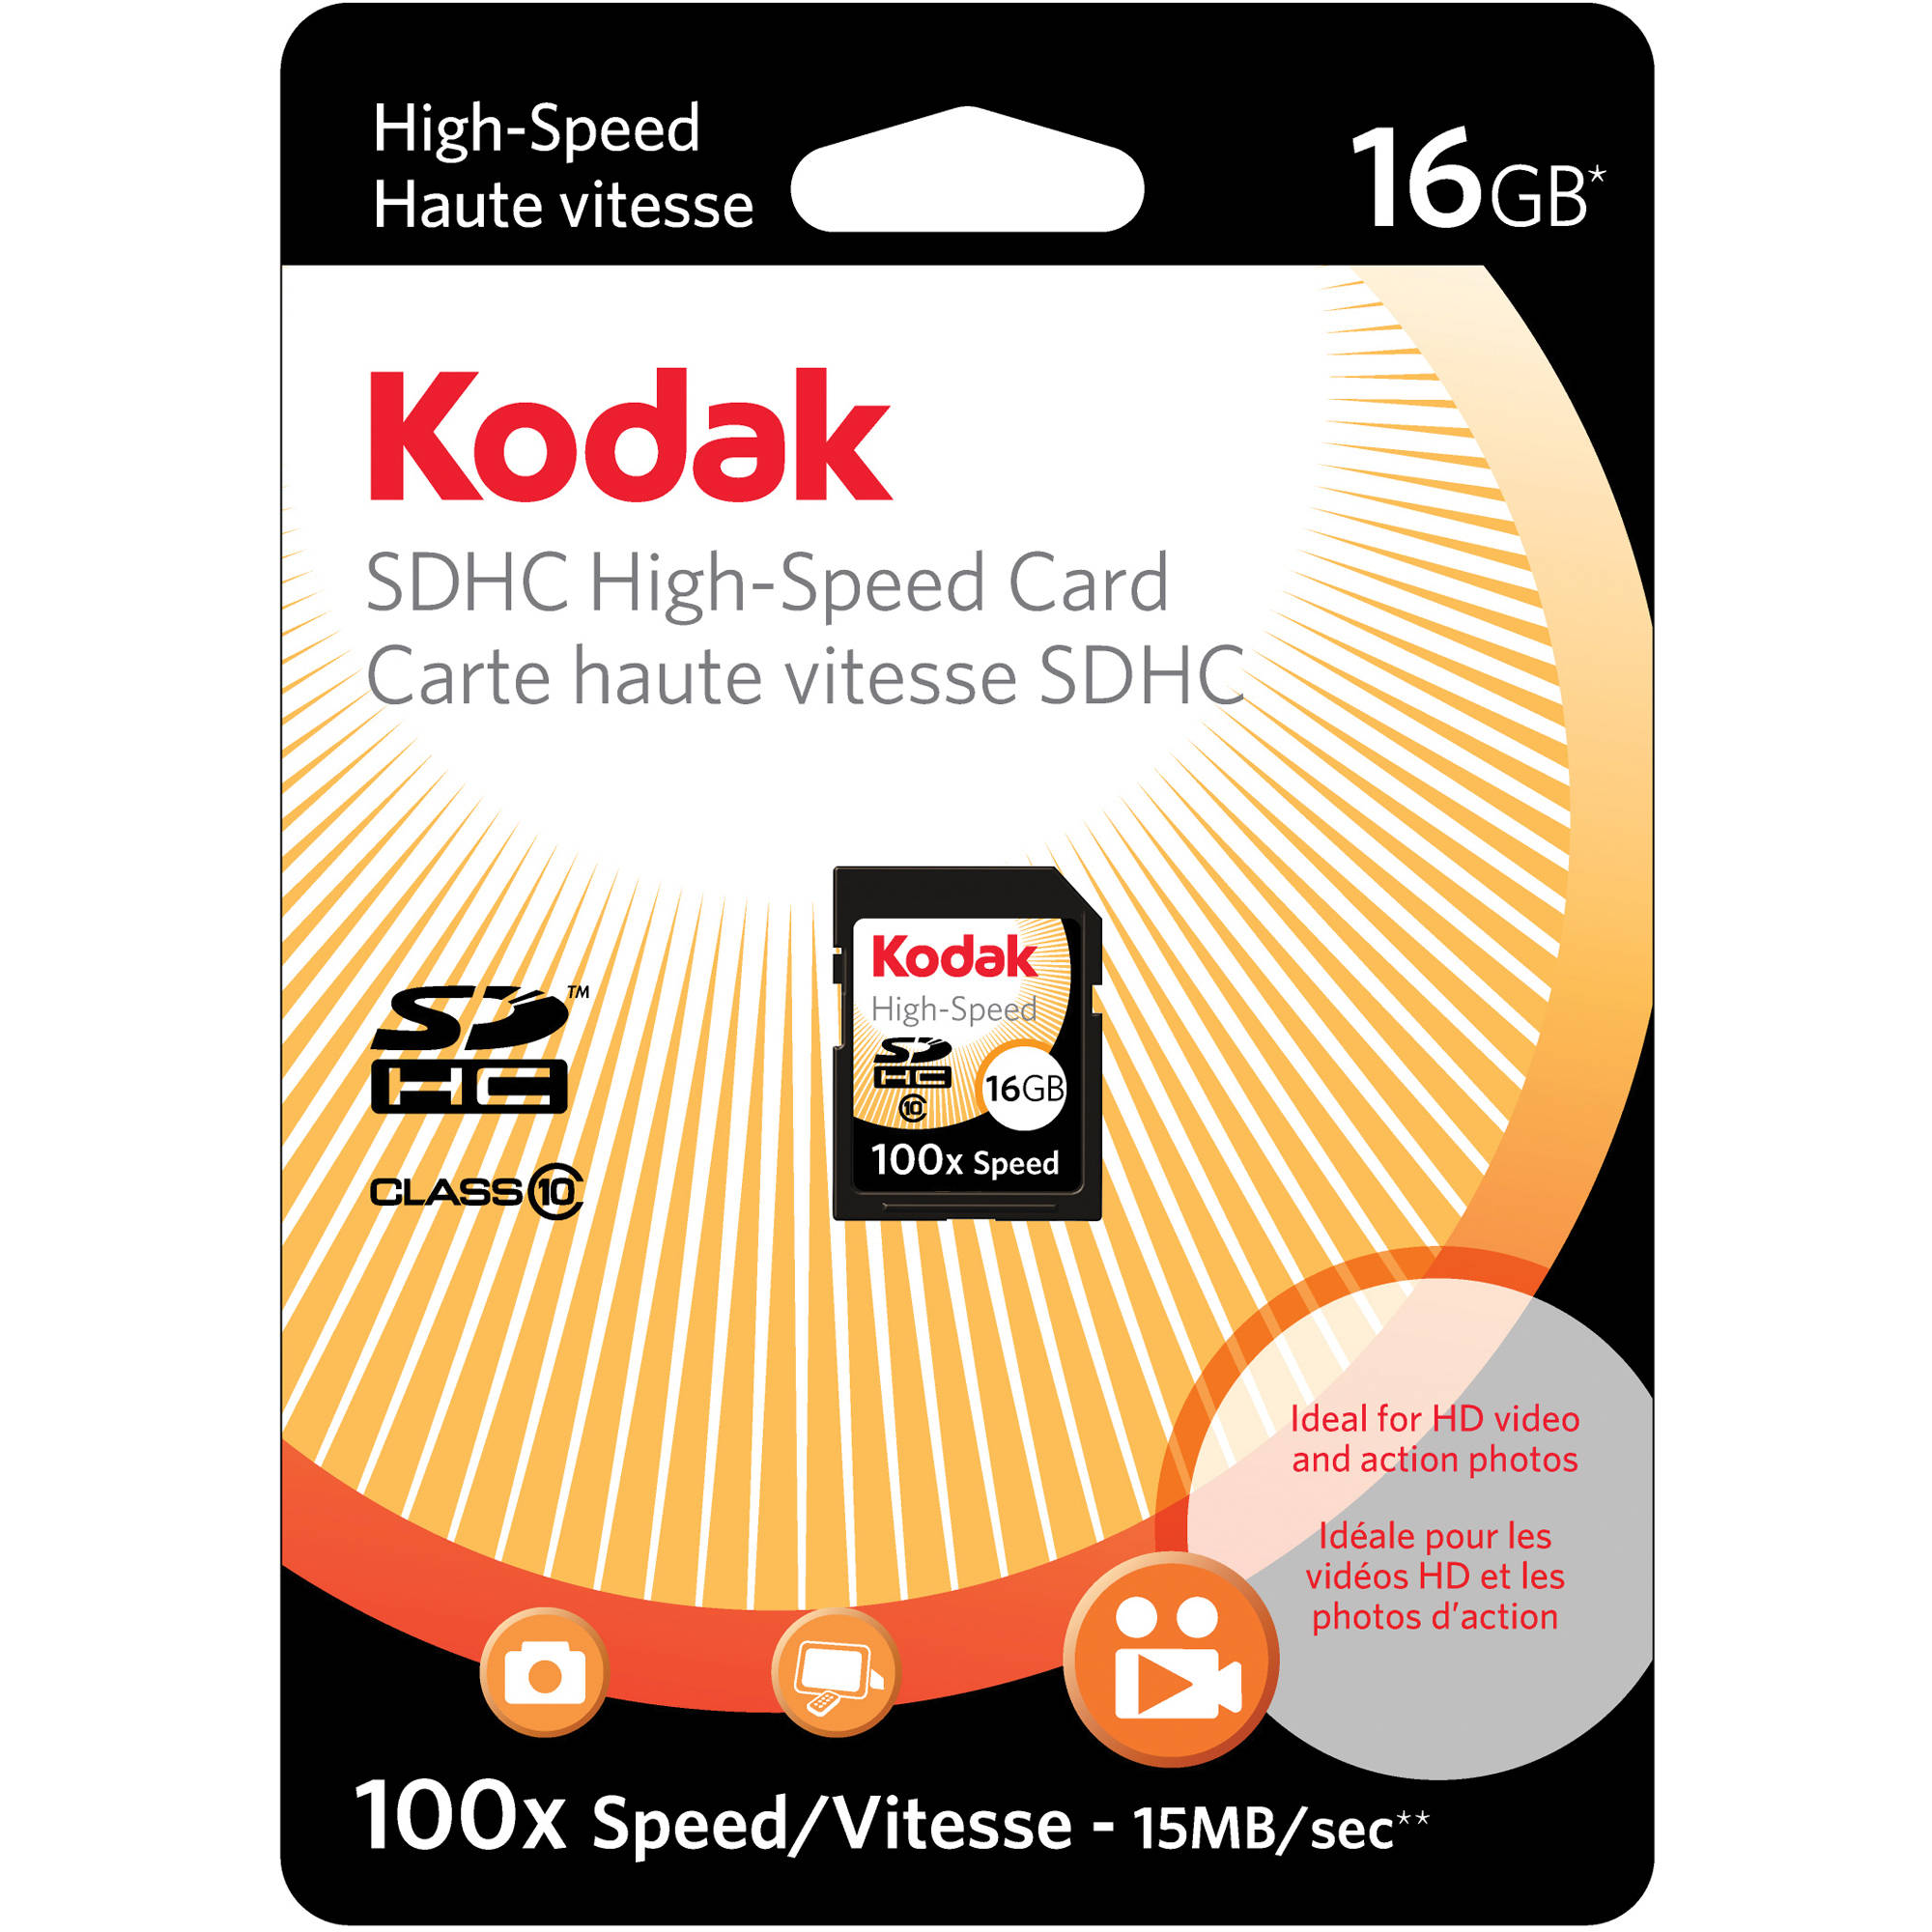 Comes with. A free High Speed USB Adapter is included 16GB Class 10 SDHC Team High Speed Memory Card 20MB//Sec Fastest Card in the Market FOR Kodak EasyShare M863 M873 M883